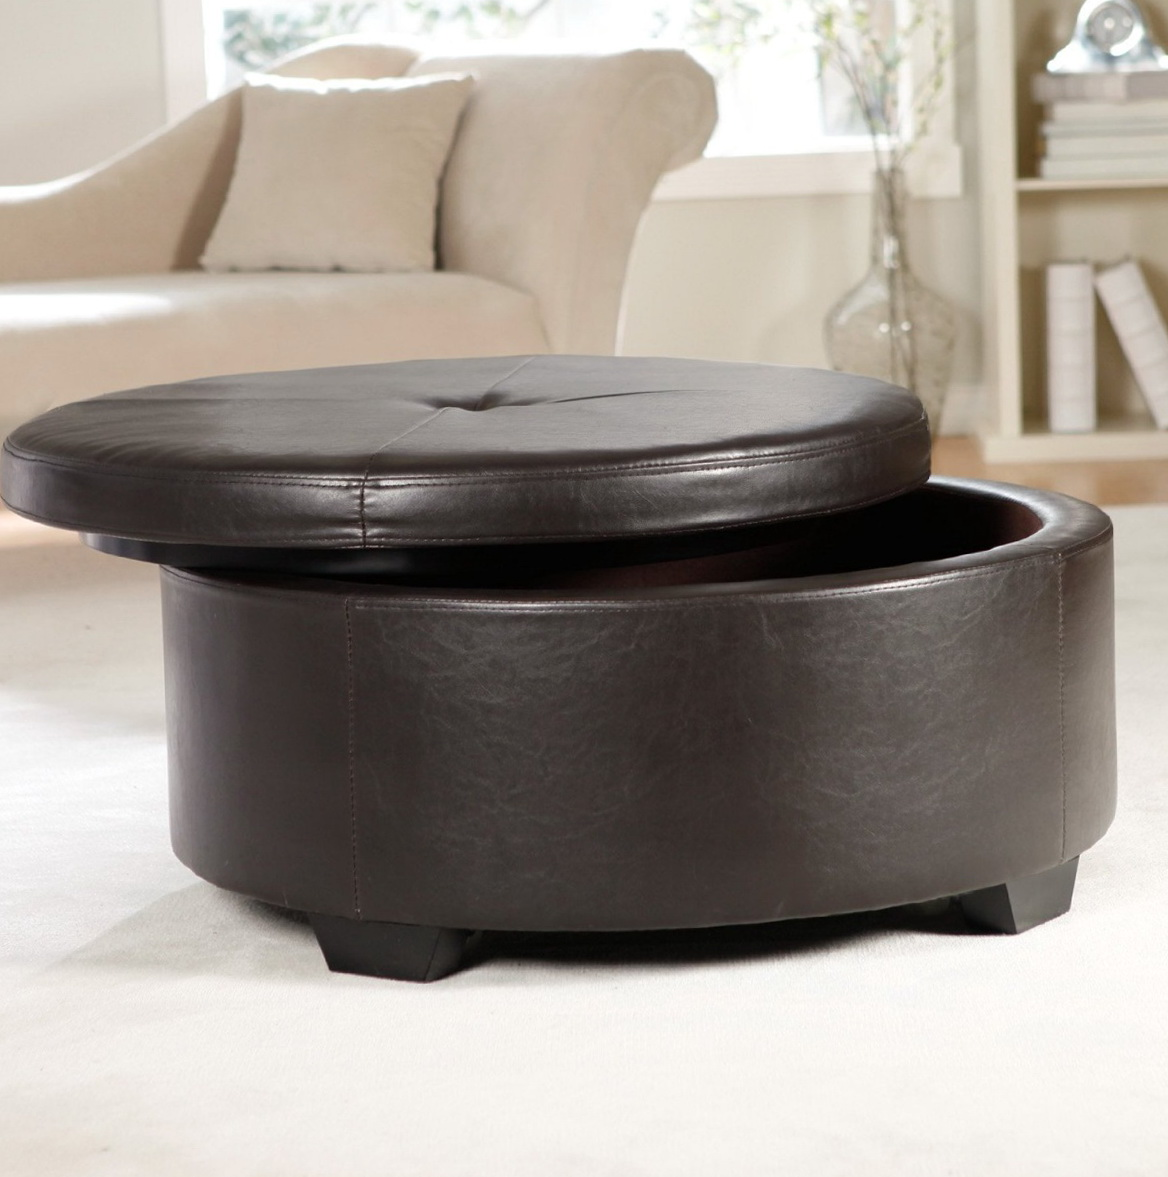 Large Round Ottoman Coffee Table Home Design Ideas